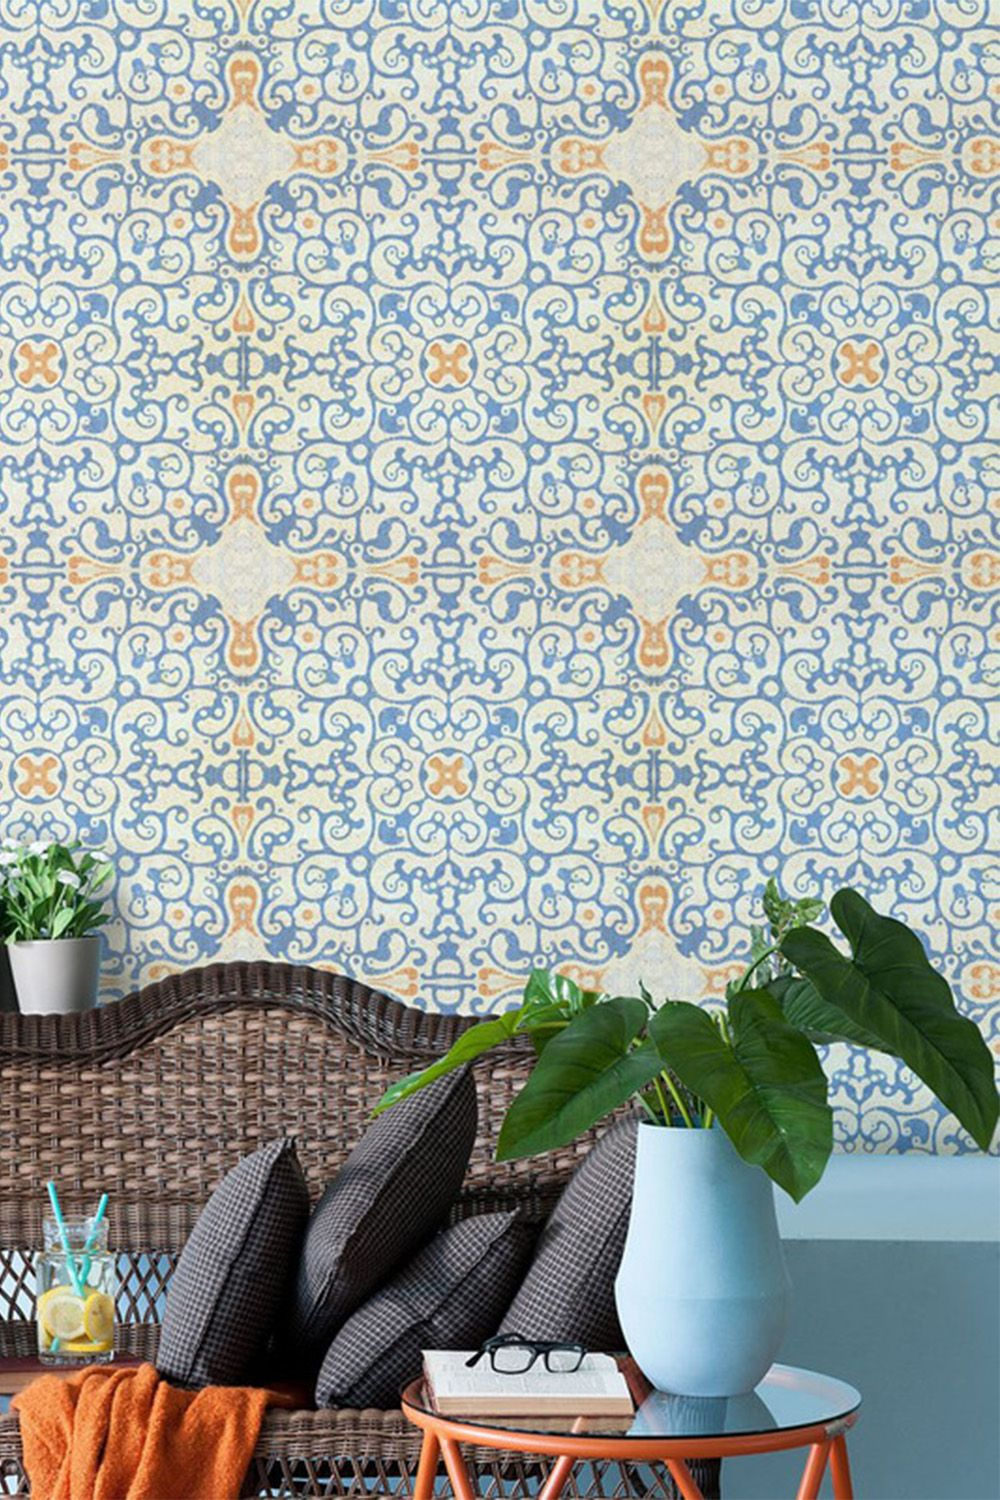 Spanish Tile Wallpaper in 2020 Tile wallpaper, Spanish